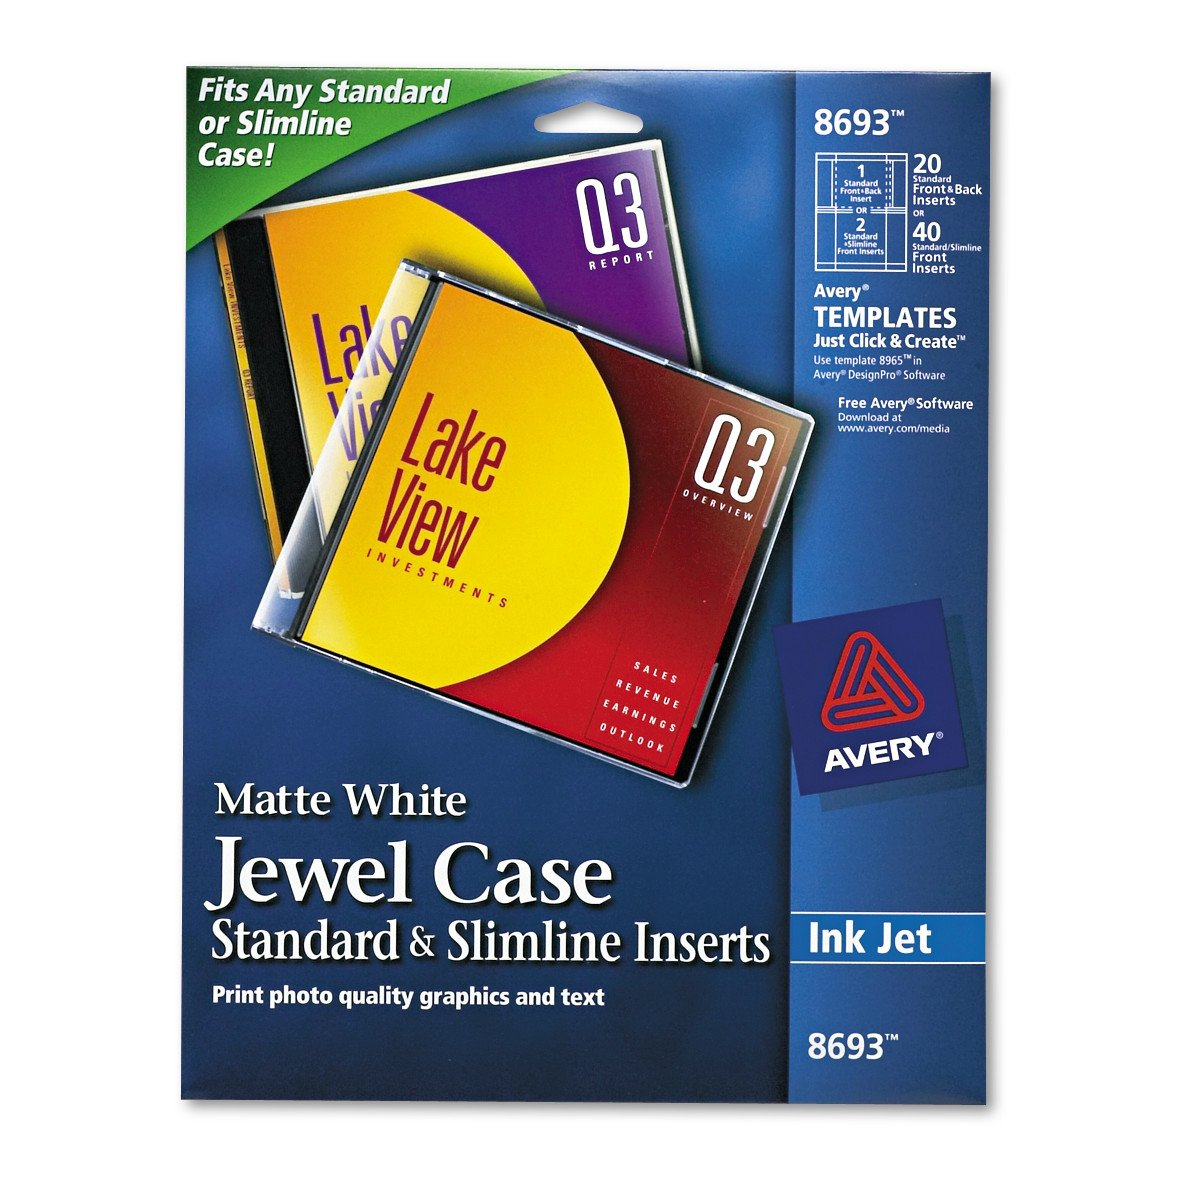 Amazon Avery Cddvd Jewel Case Inserts For Ink Jet Printers